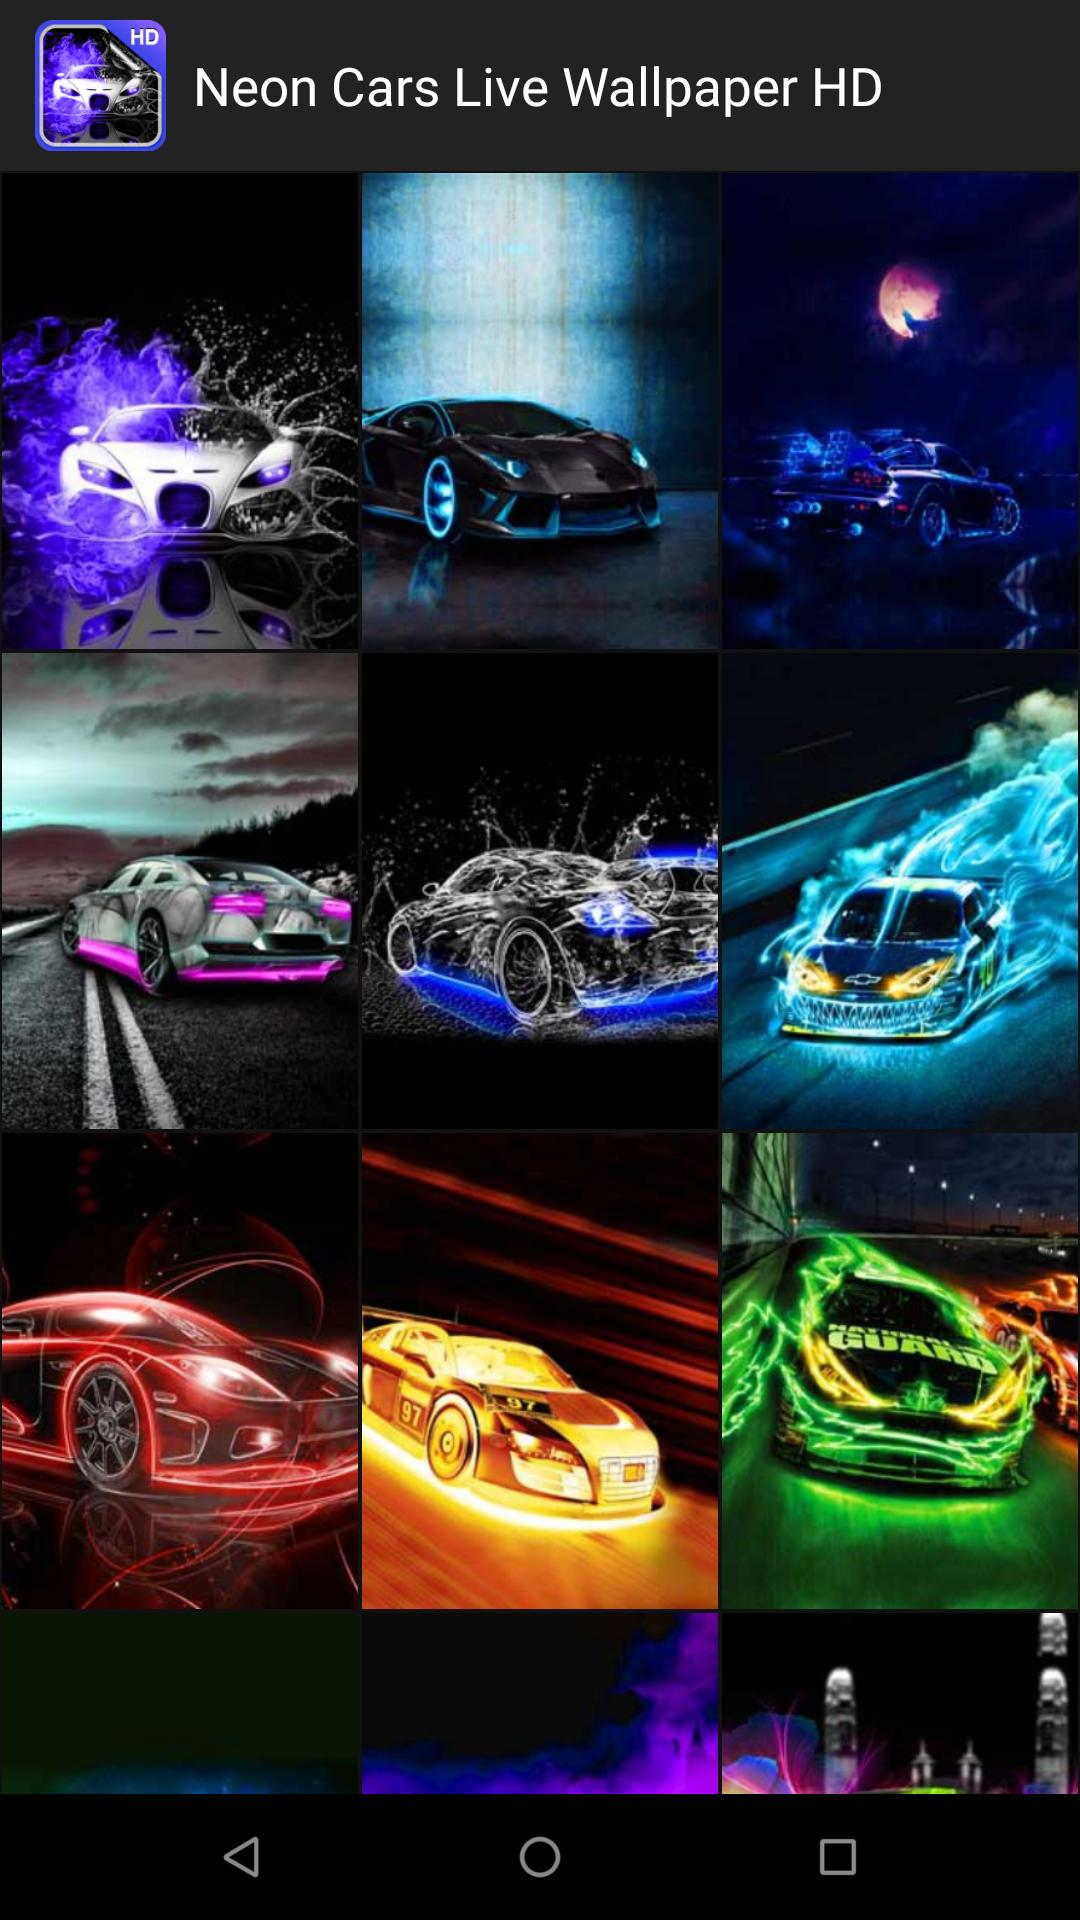 Neon Cars Live Wallpaper Hd For Android Apk Download